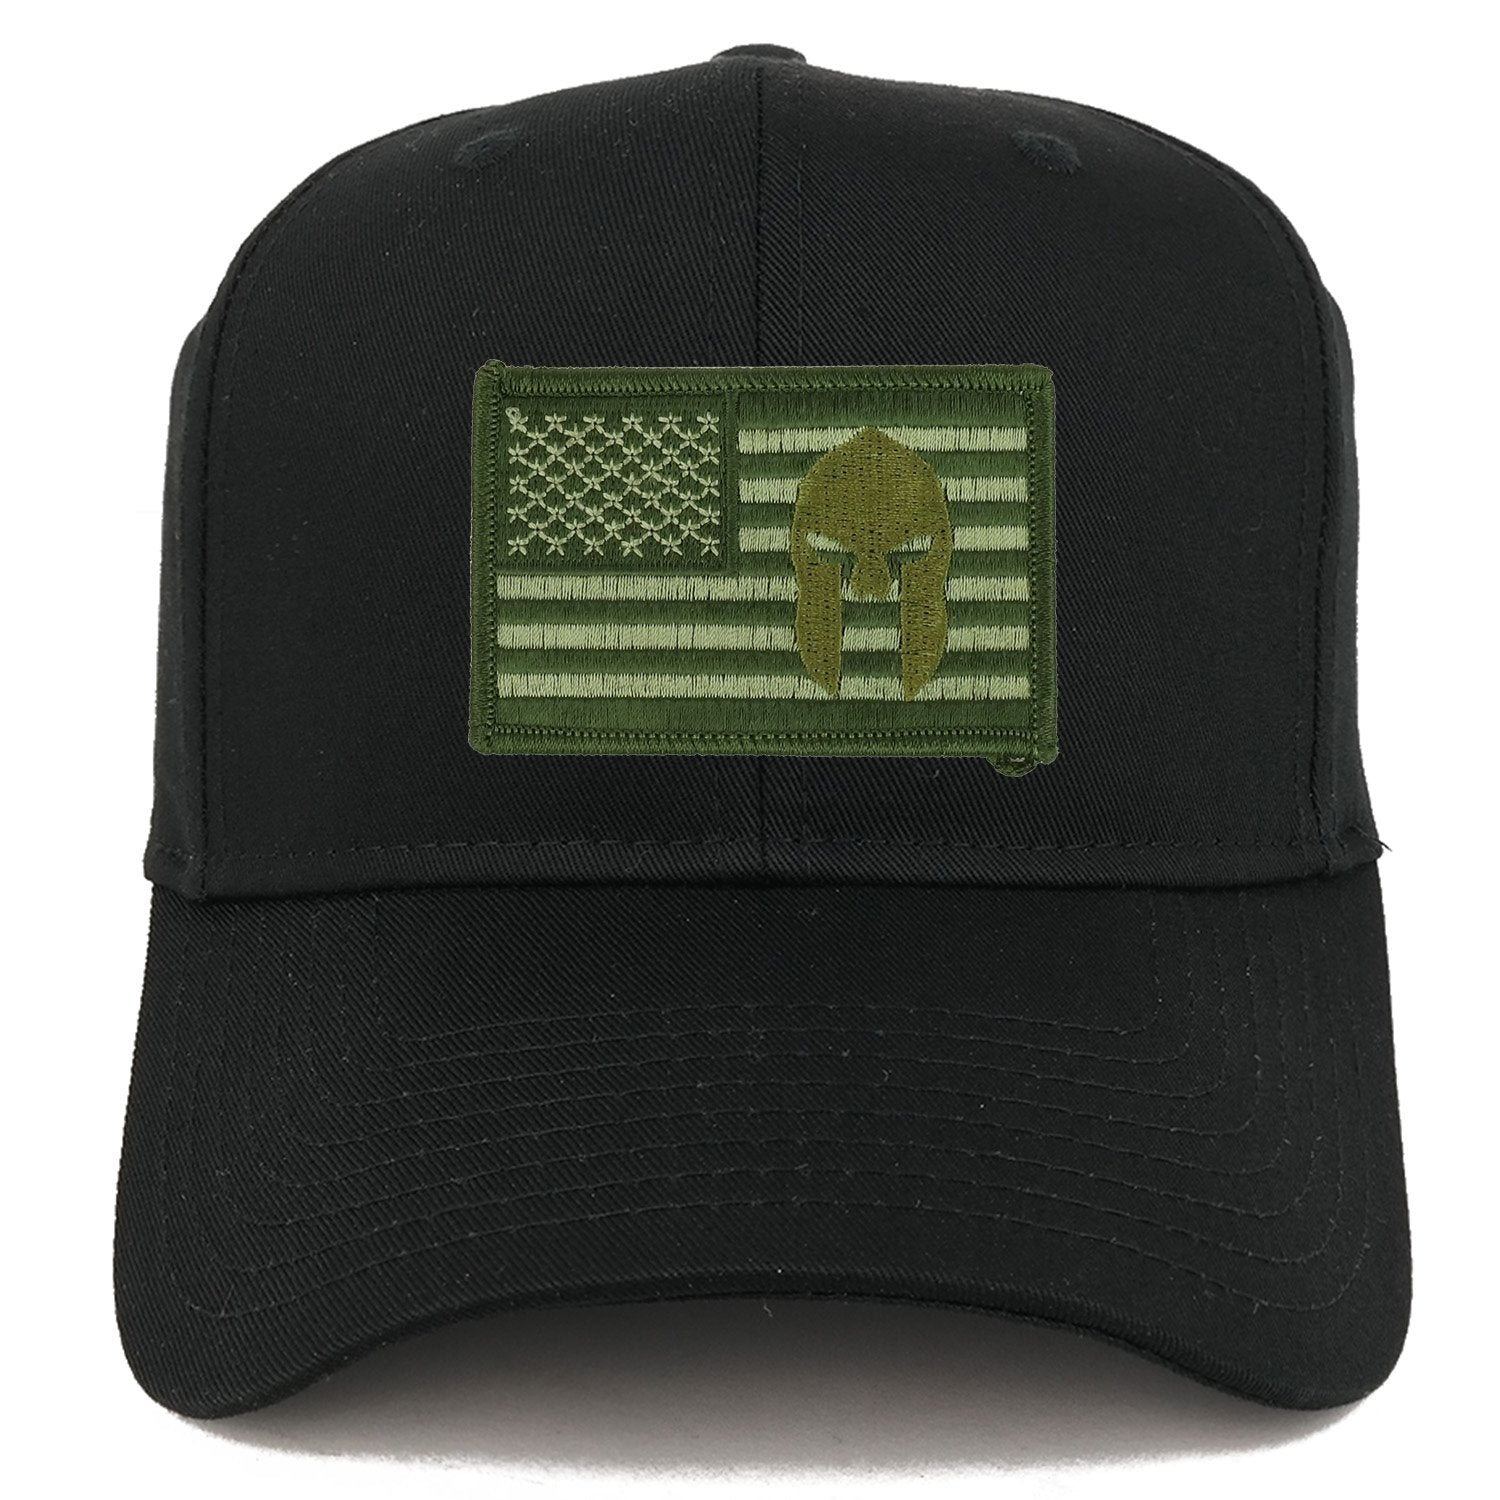 0239394b Armycrew Olive USA American Flag Spartan Logo Embroidered Iron On Patch  Snap Back Cap